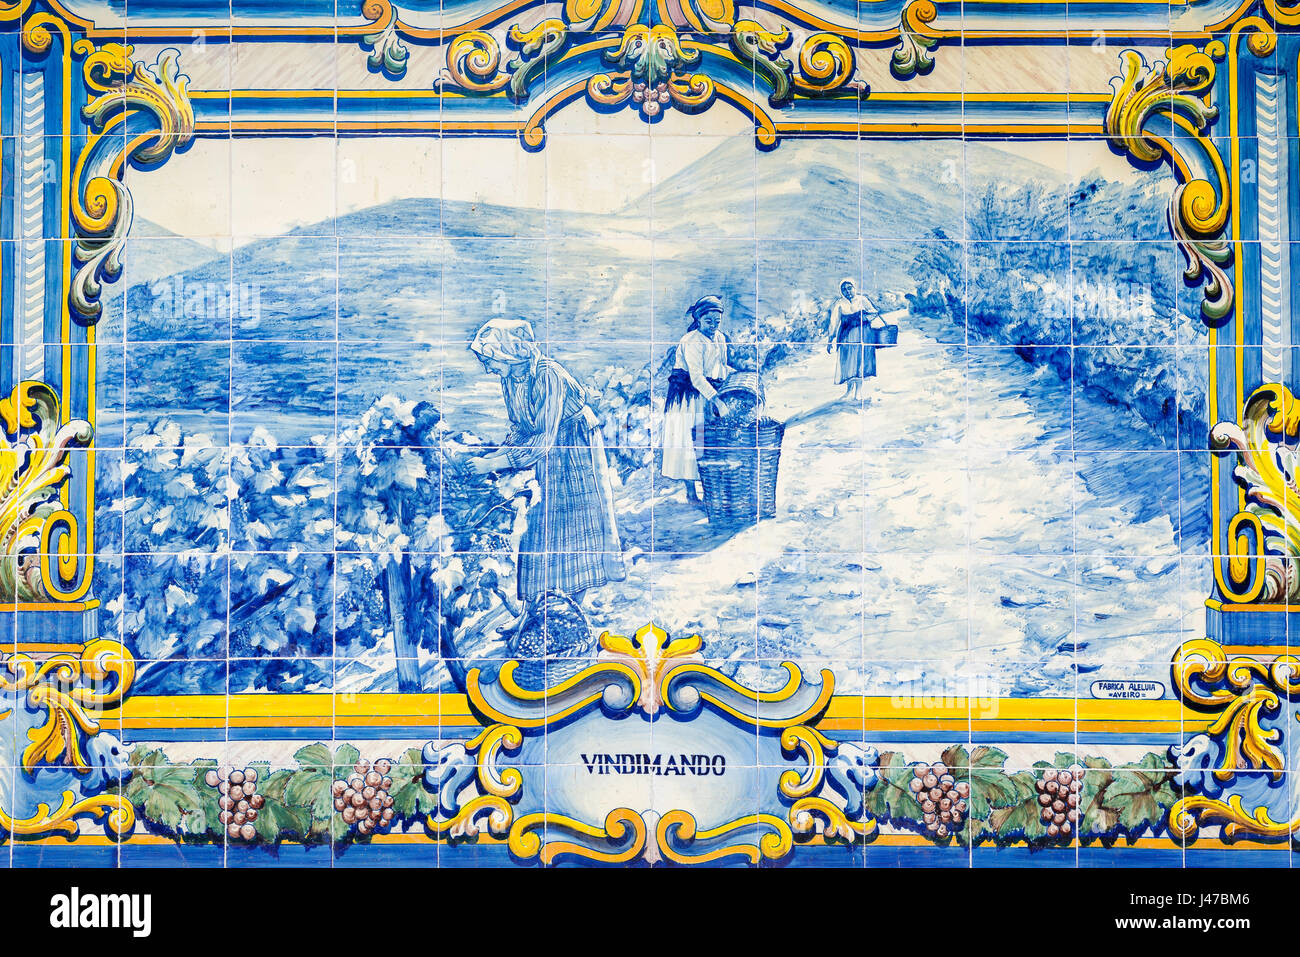 Portugal tiles, one of a series of 10 scenes in blue azulejos tiles depicting the Douro Valley port wine harvest - Stock Image